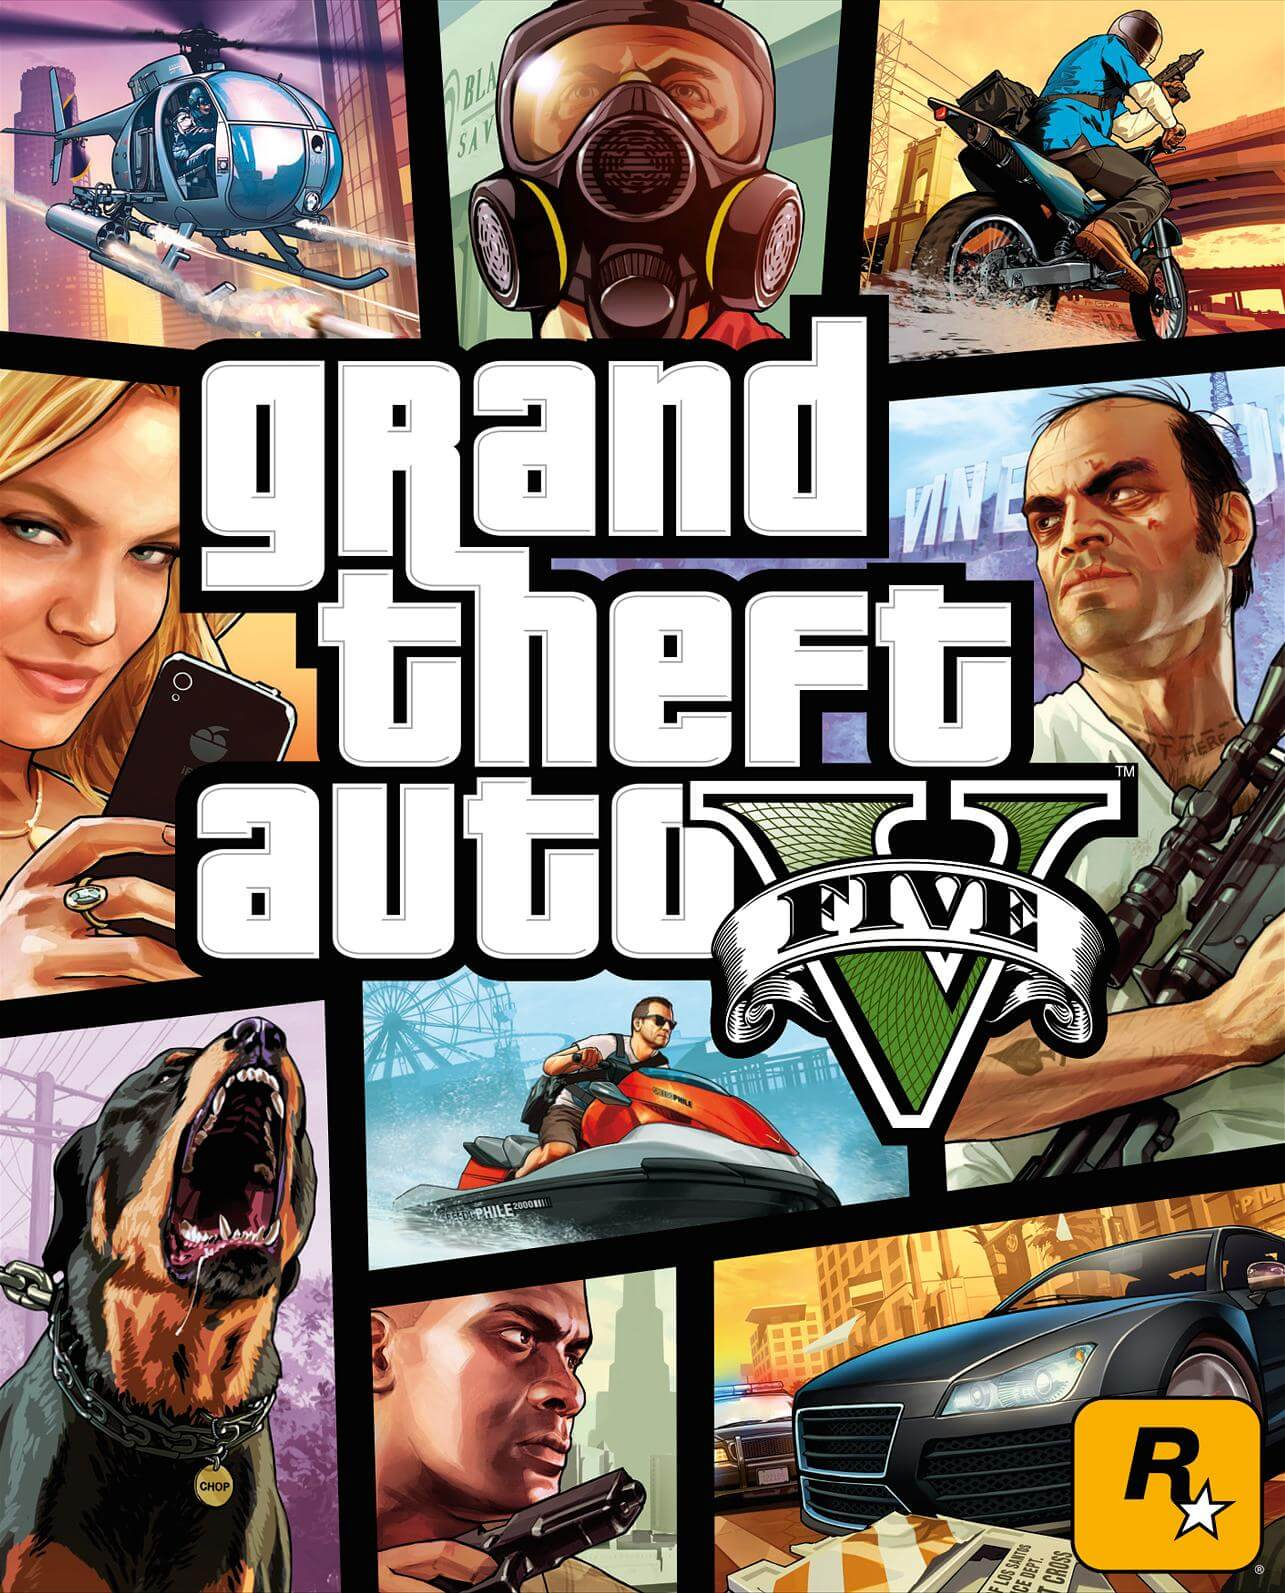 GTA 5 PC Download - Grand Theft Auto V Crack on PC